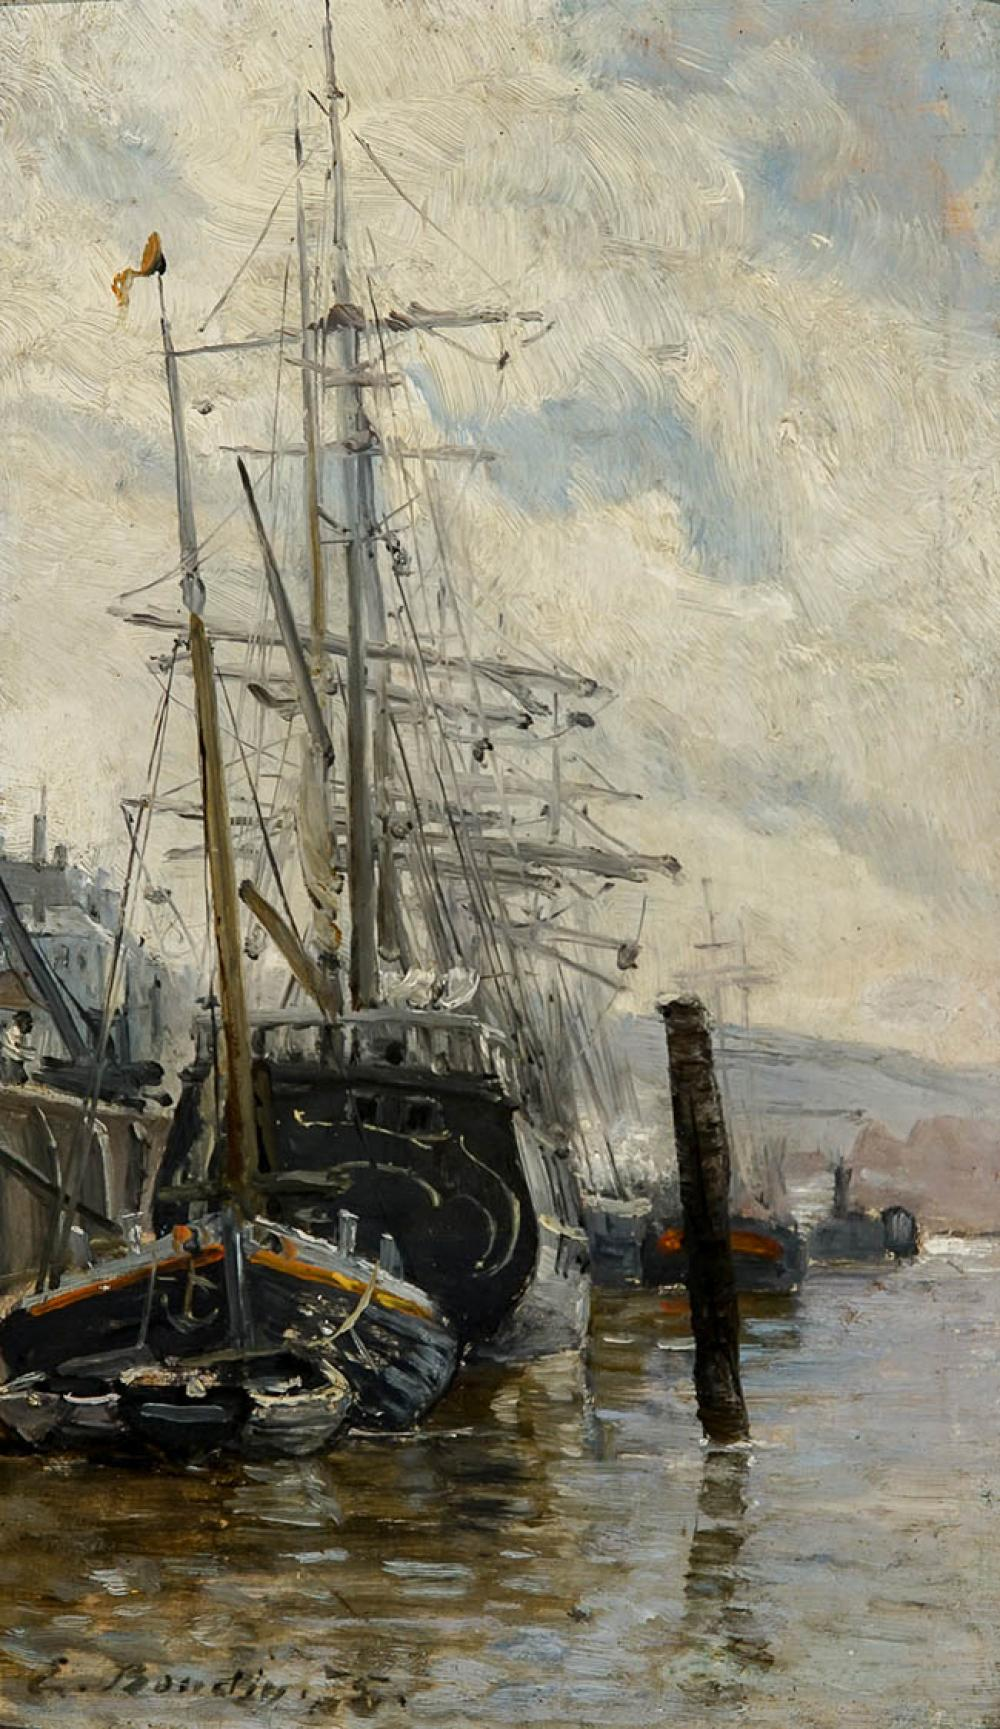 Attributed to Eugene Louis Boudin (French 1824-1898), Voilier au Port, Oil on Board, 9-1/4 x 5-1/4 in